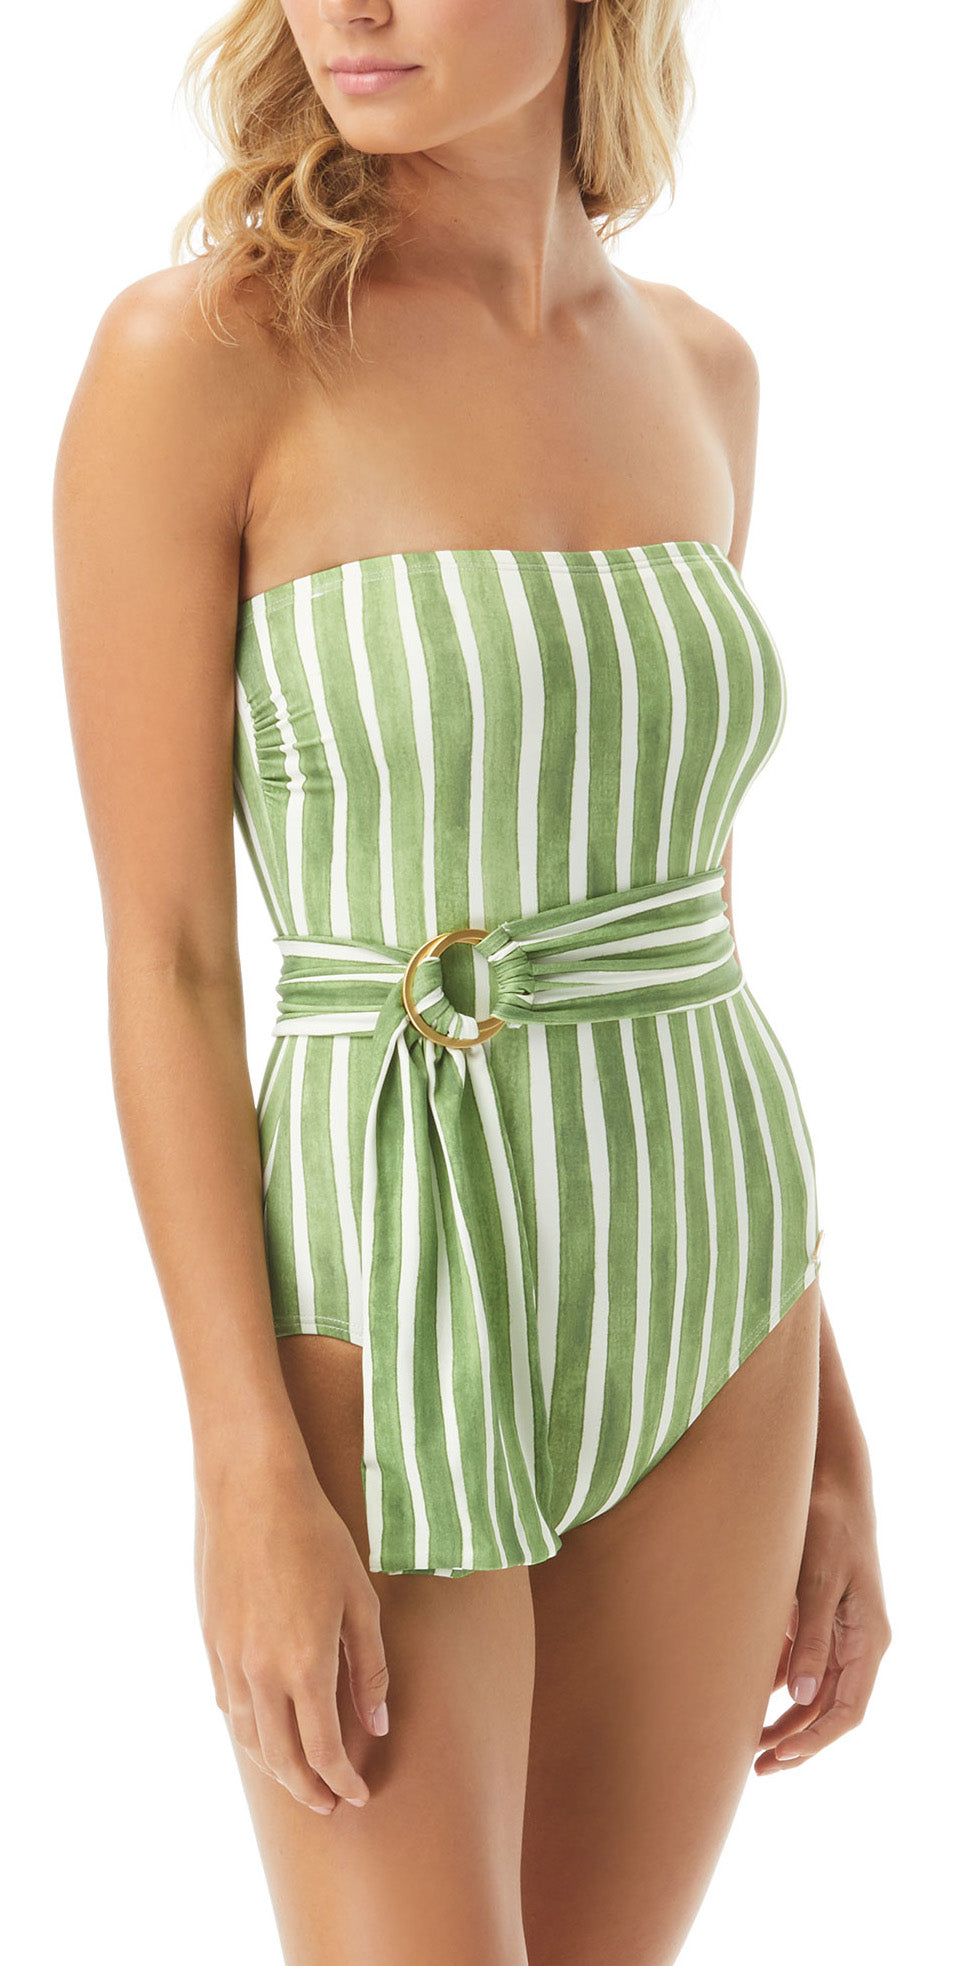 Bandeau neckline  Removable soft cups Removable strap Belt with ring Fully lined Full coverage Nylon/spandex Pull-on construction Hand wash Product Number: V72679